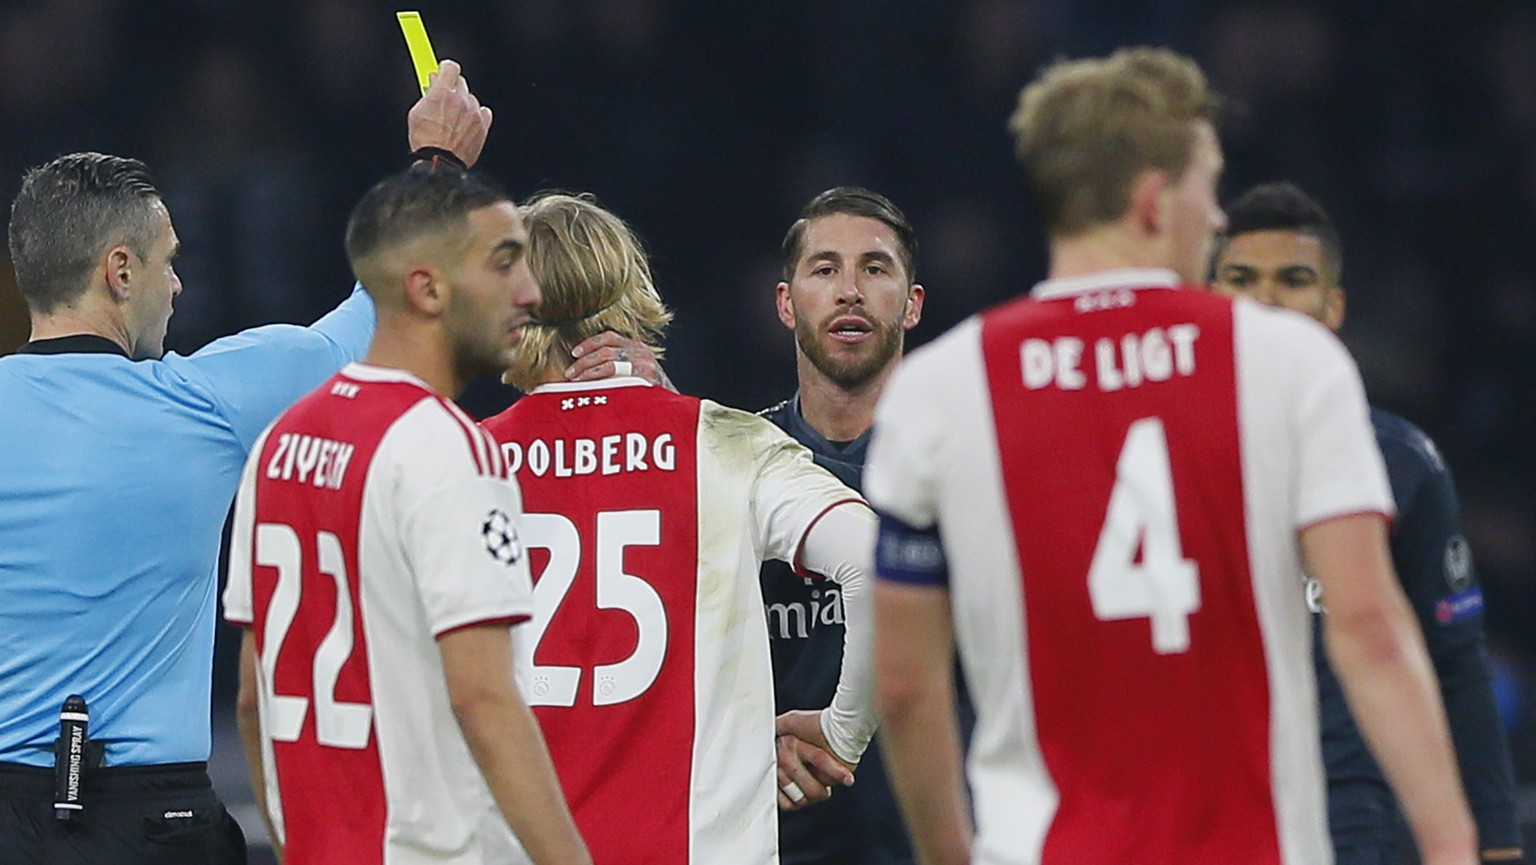 This Wednesday Feb. 13, 2019, image shows referee Damir Skomina, left, showing a yellow card to Real's Sergio Ramos, center, after a foul on Ajax's Kasper Dolberg during the first leg, round of sixteen, Champions League soccer match between Ajax and Real Madrid at the Johan Cruyff ArenA in Amsterdam, Netherlands. UEFA is investigating reported comments by Real Madrid captain Sergio Ramos that he intentionally got a yellow card to provoke a favorable Champions League ban. (AP Photo/Peter Dejong)